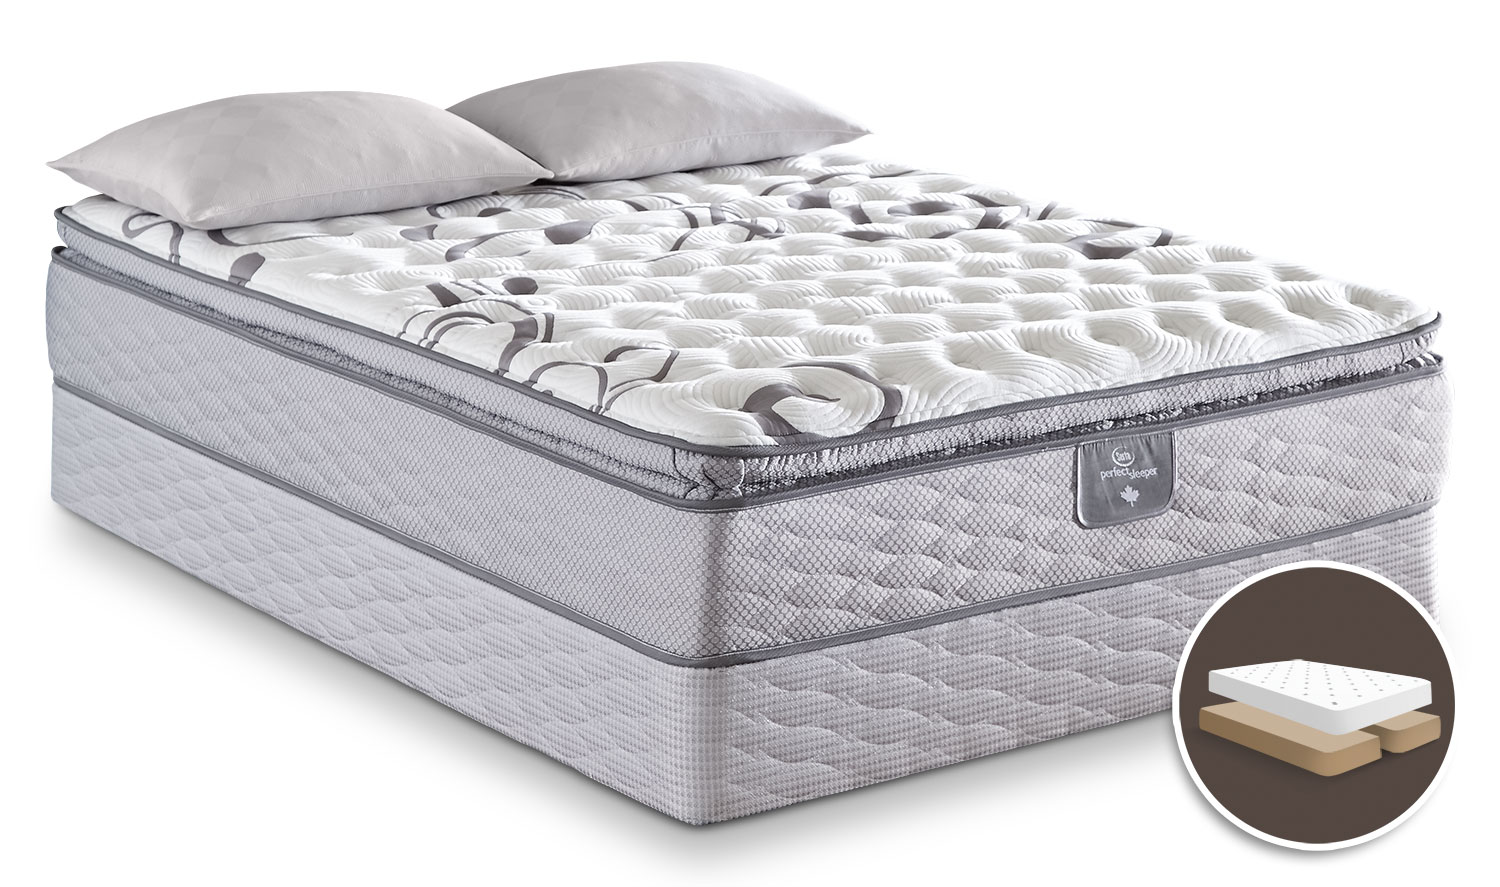 Serta Perfect Sleeper Valebridge Pillow-Top Firm Queen Mattress with Split Boxspring